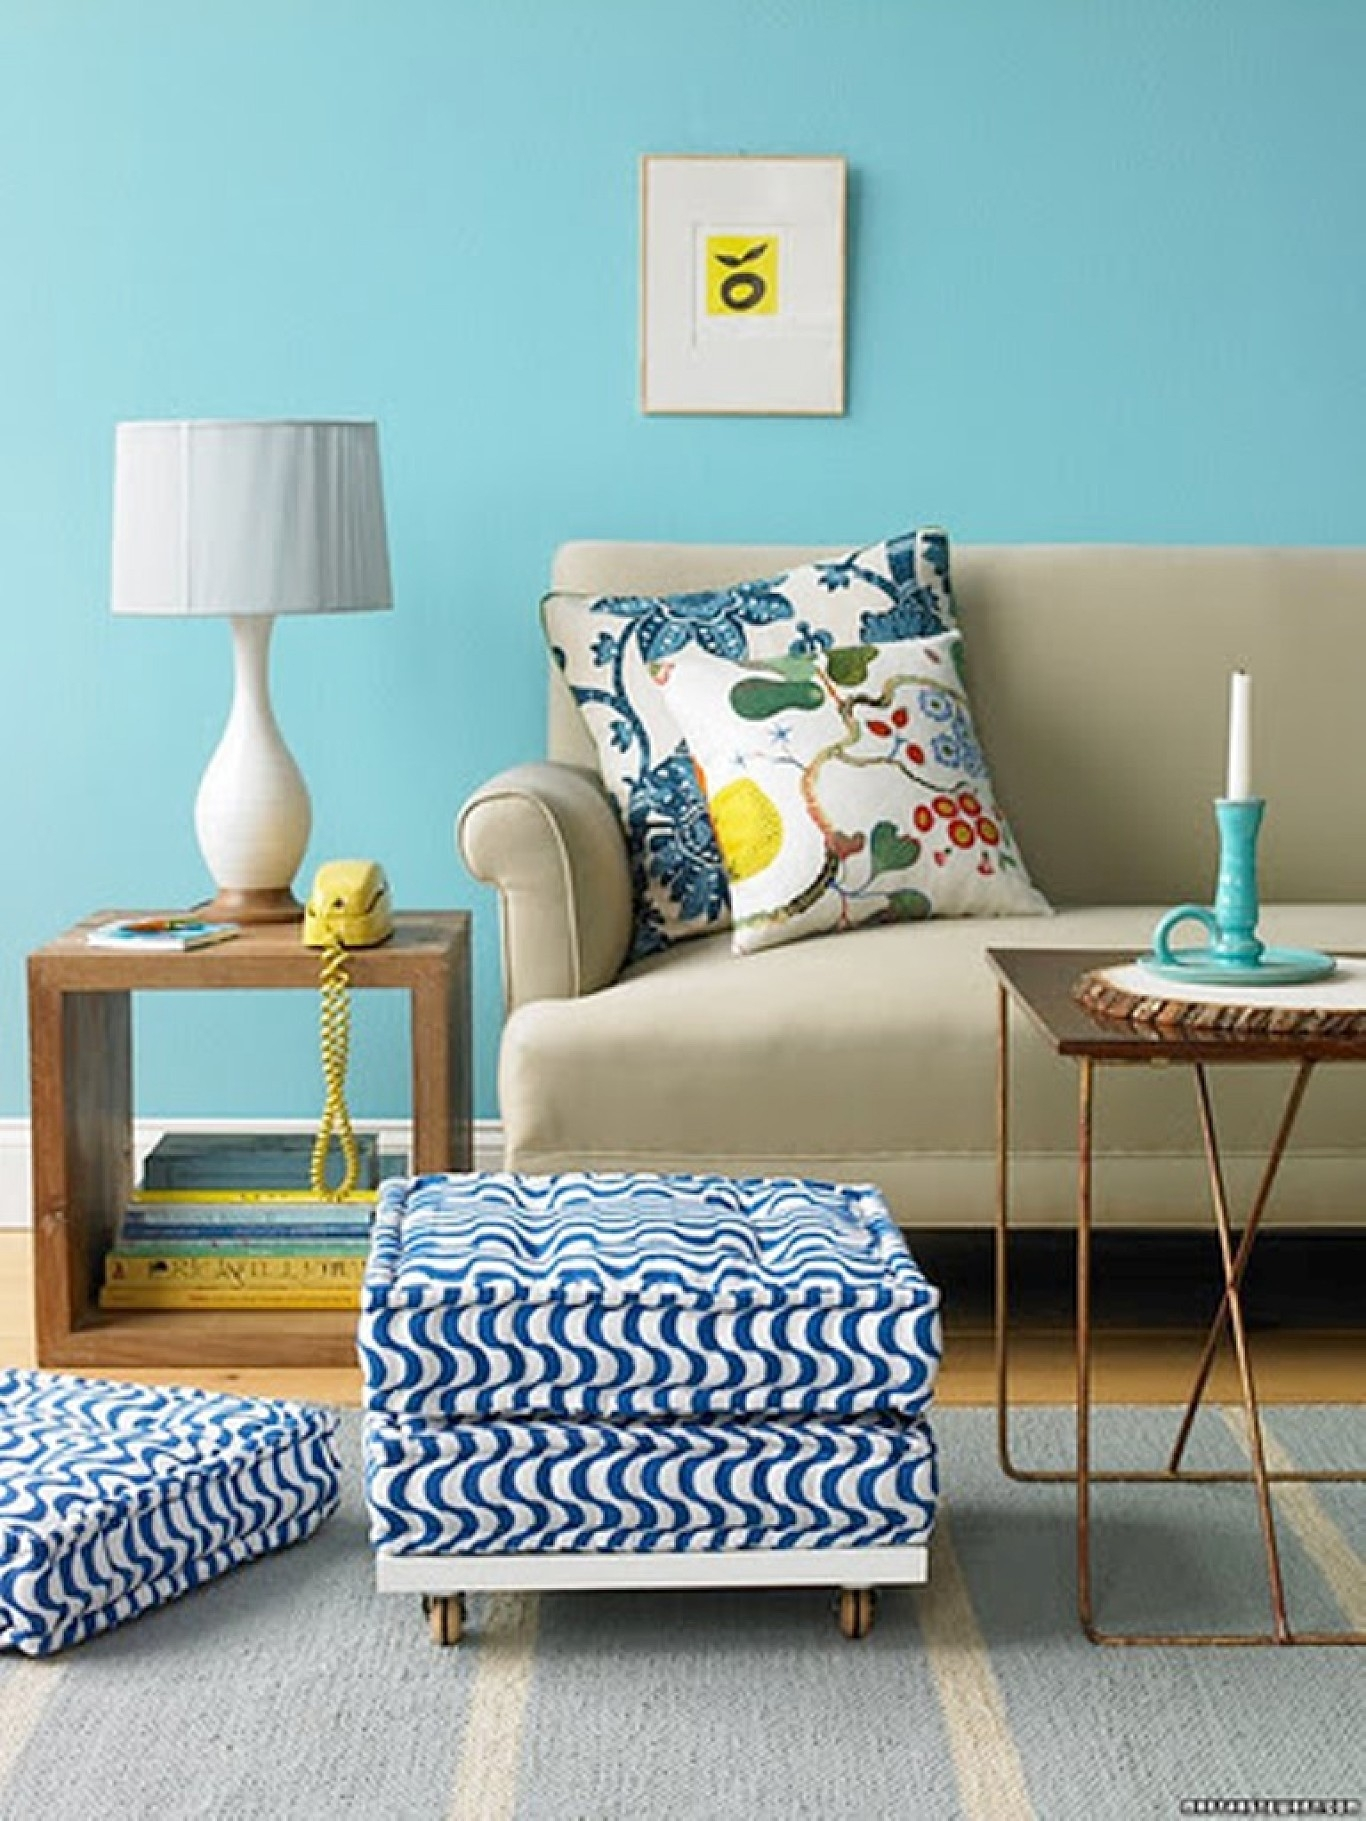 Sleek Colors That Go Wall Accents Color Combinations Single Wall Painting Designs What Accent Colors Go Walls Withmost Recent Wall Accents Photo Gallery Grey Colors That Go houzz 01 Colors That Go With Teal